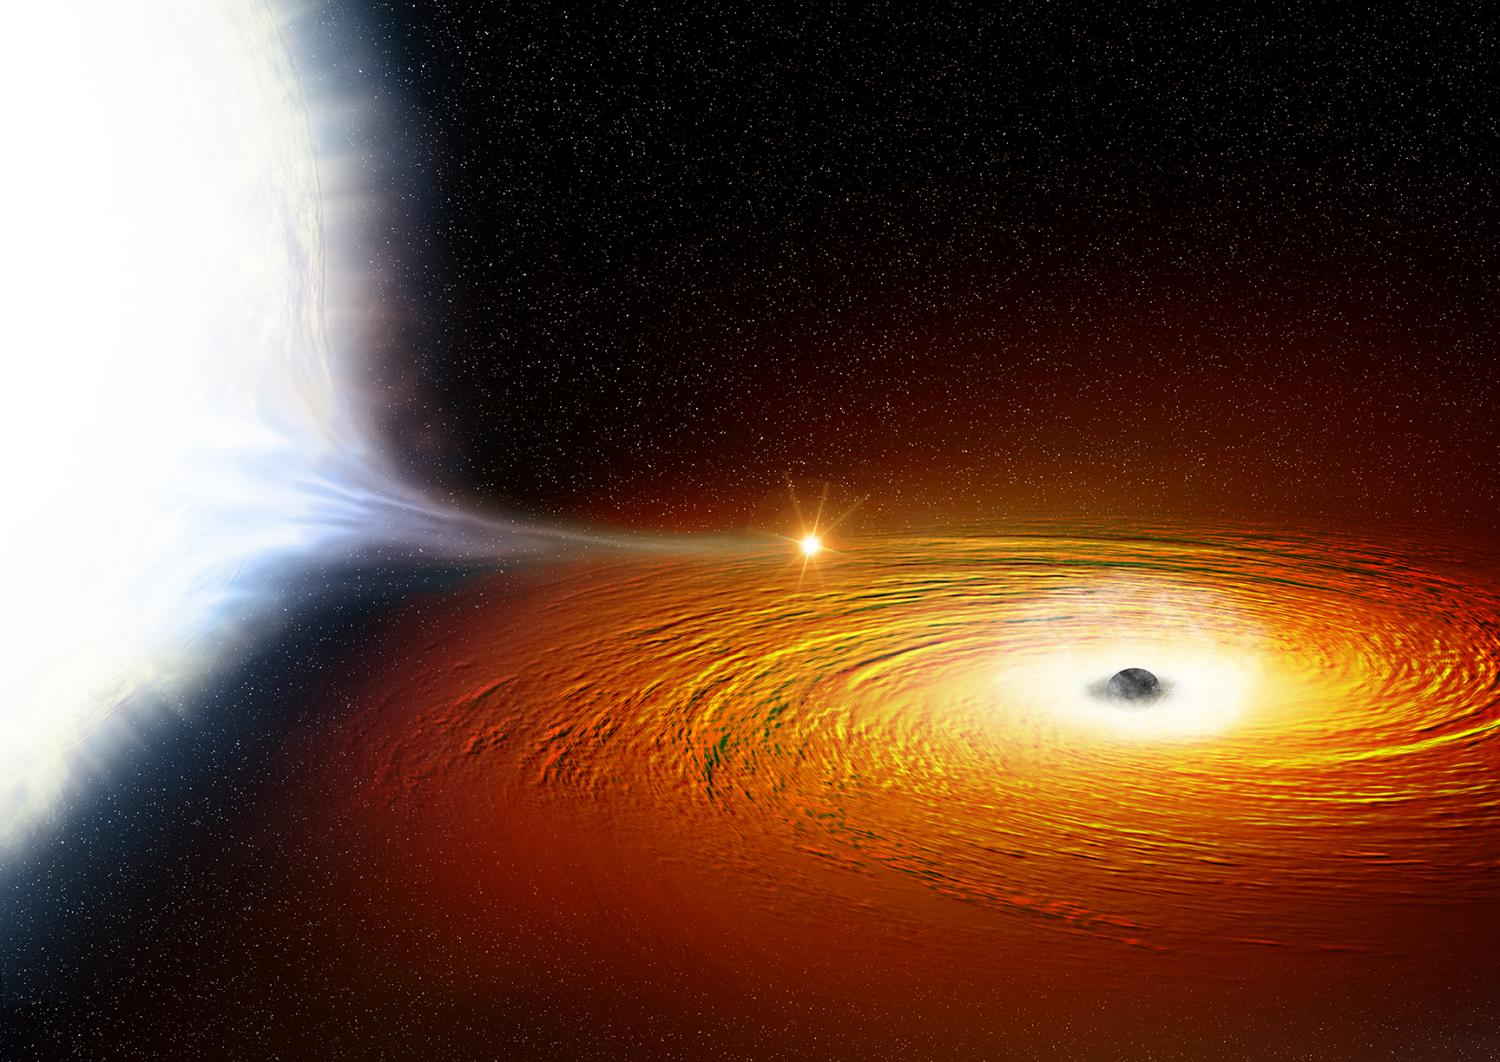 Record-Setting Star Orbits Dangerously Close to Black Hole